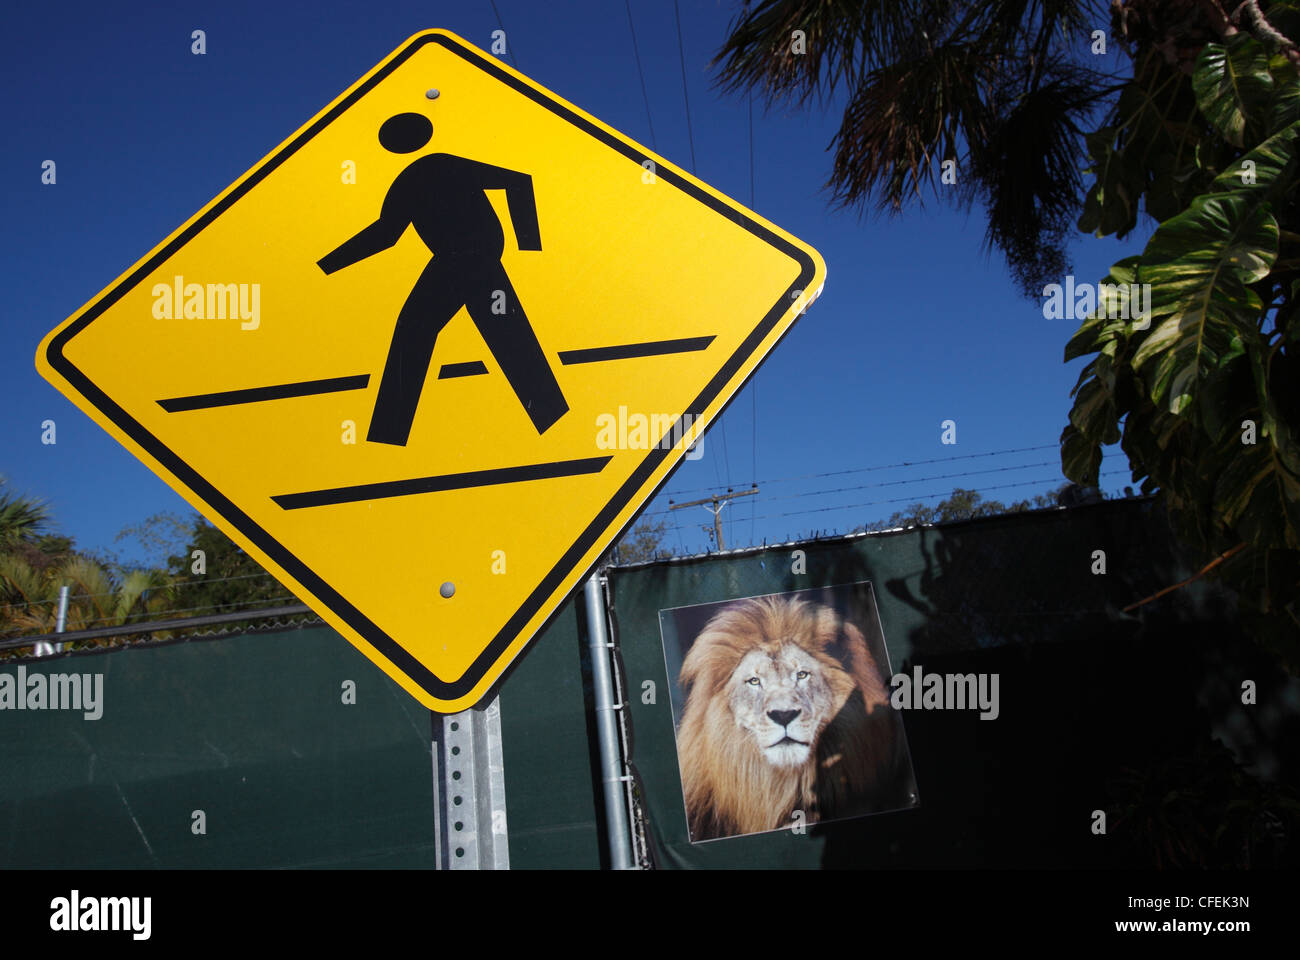 Pedestrian crossing sign and a picture of a lion outside the Naples Zoo, Naples, Florida - Stock Image